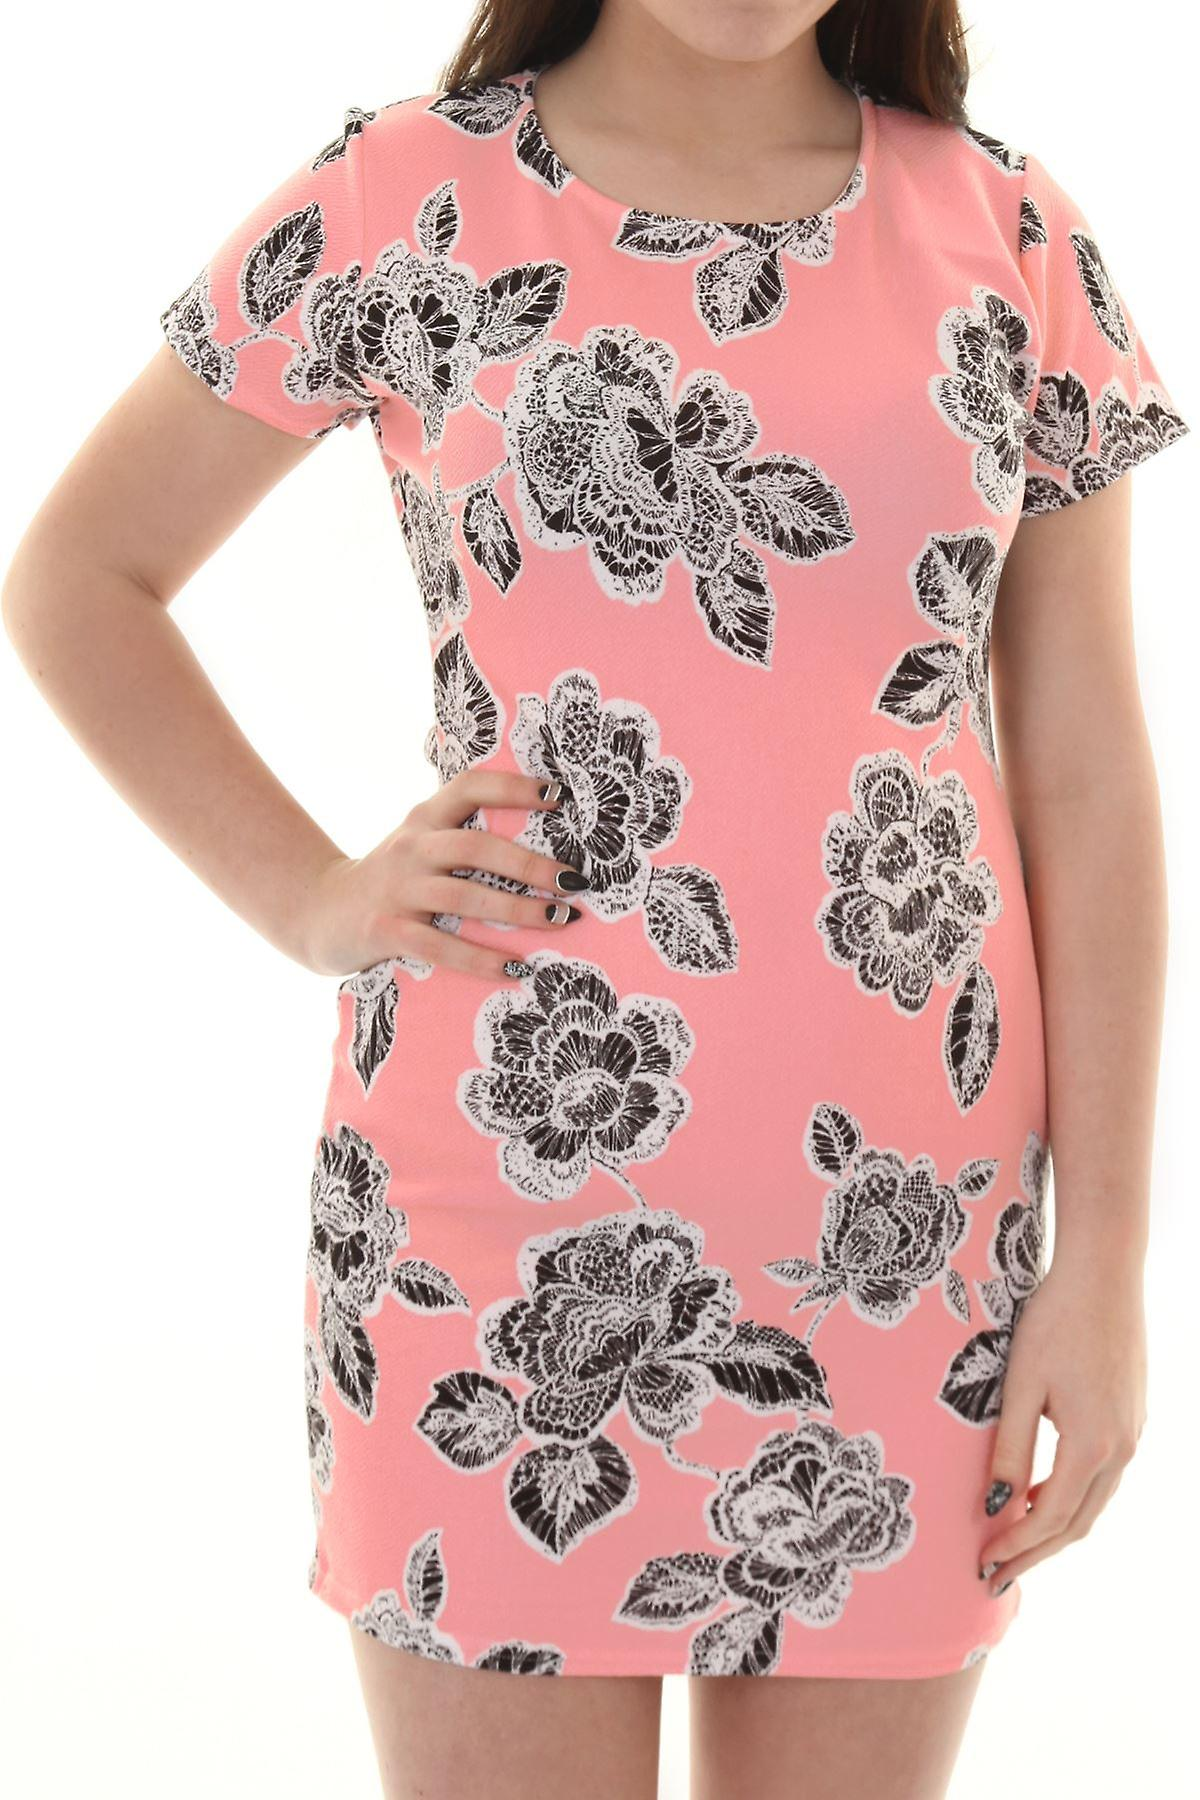 Ladies Pastel Floral Print Short Sleeve Crepe Textured Shift Dress A-Line Tunic